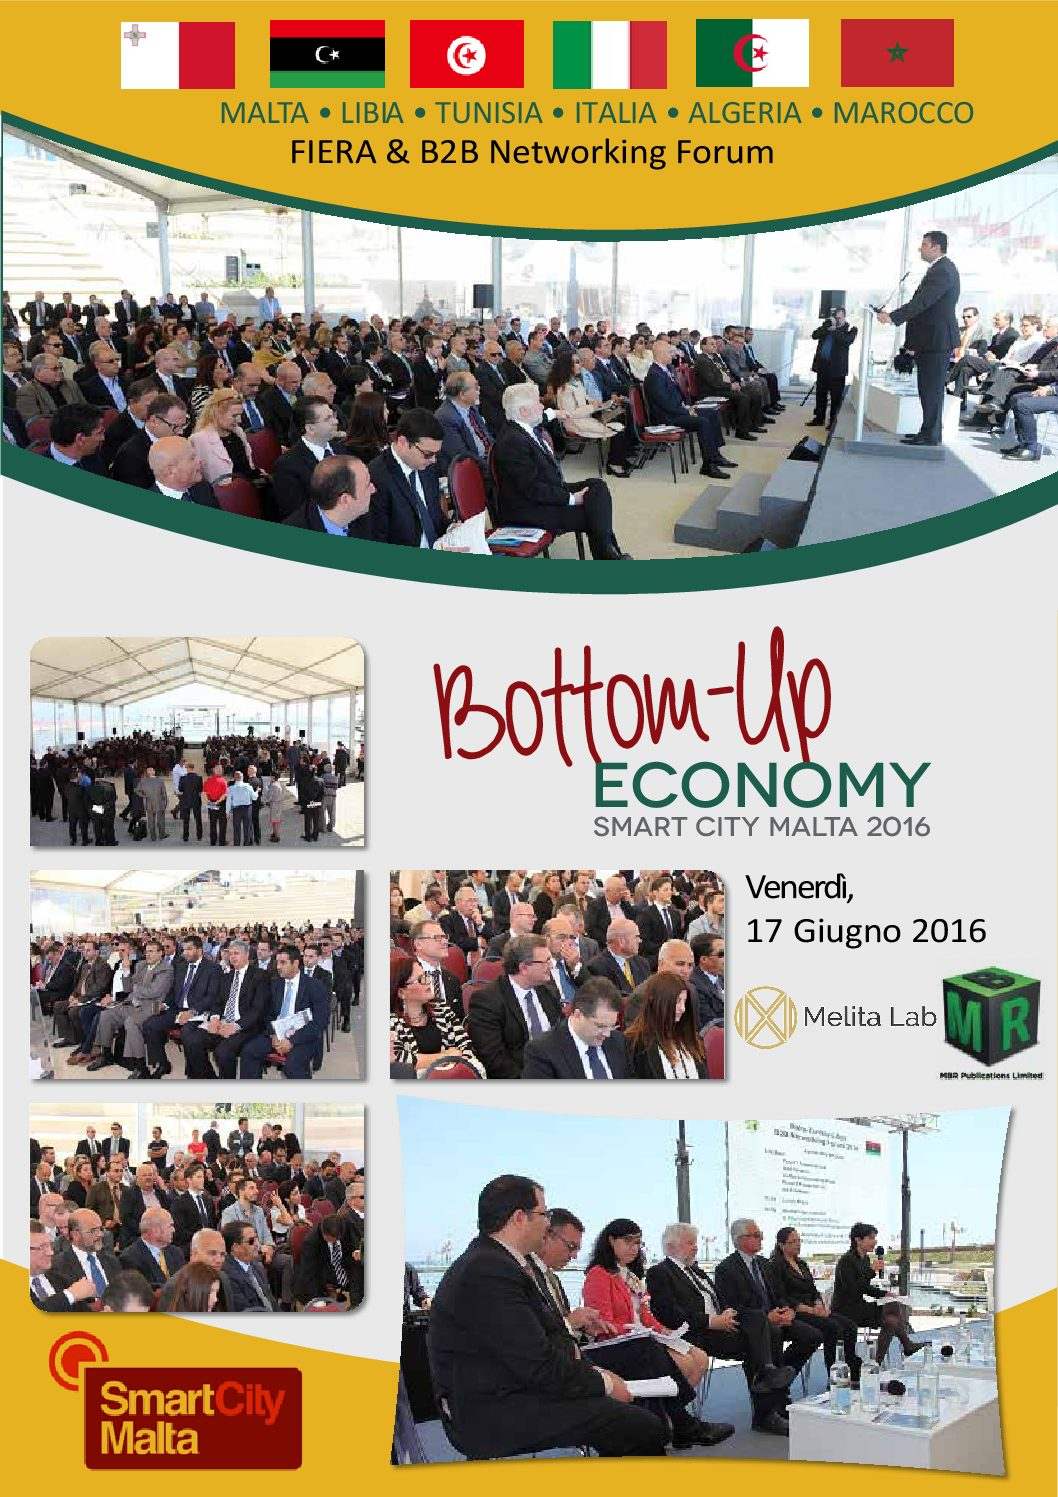 Bottom Up ECONOMY Smart City Malta 2016 17 Giugno